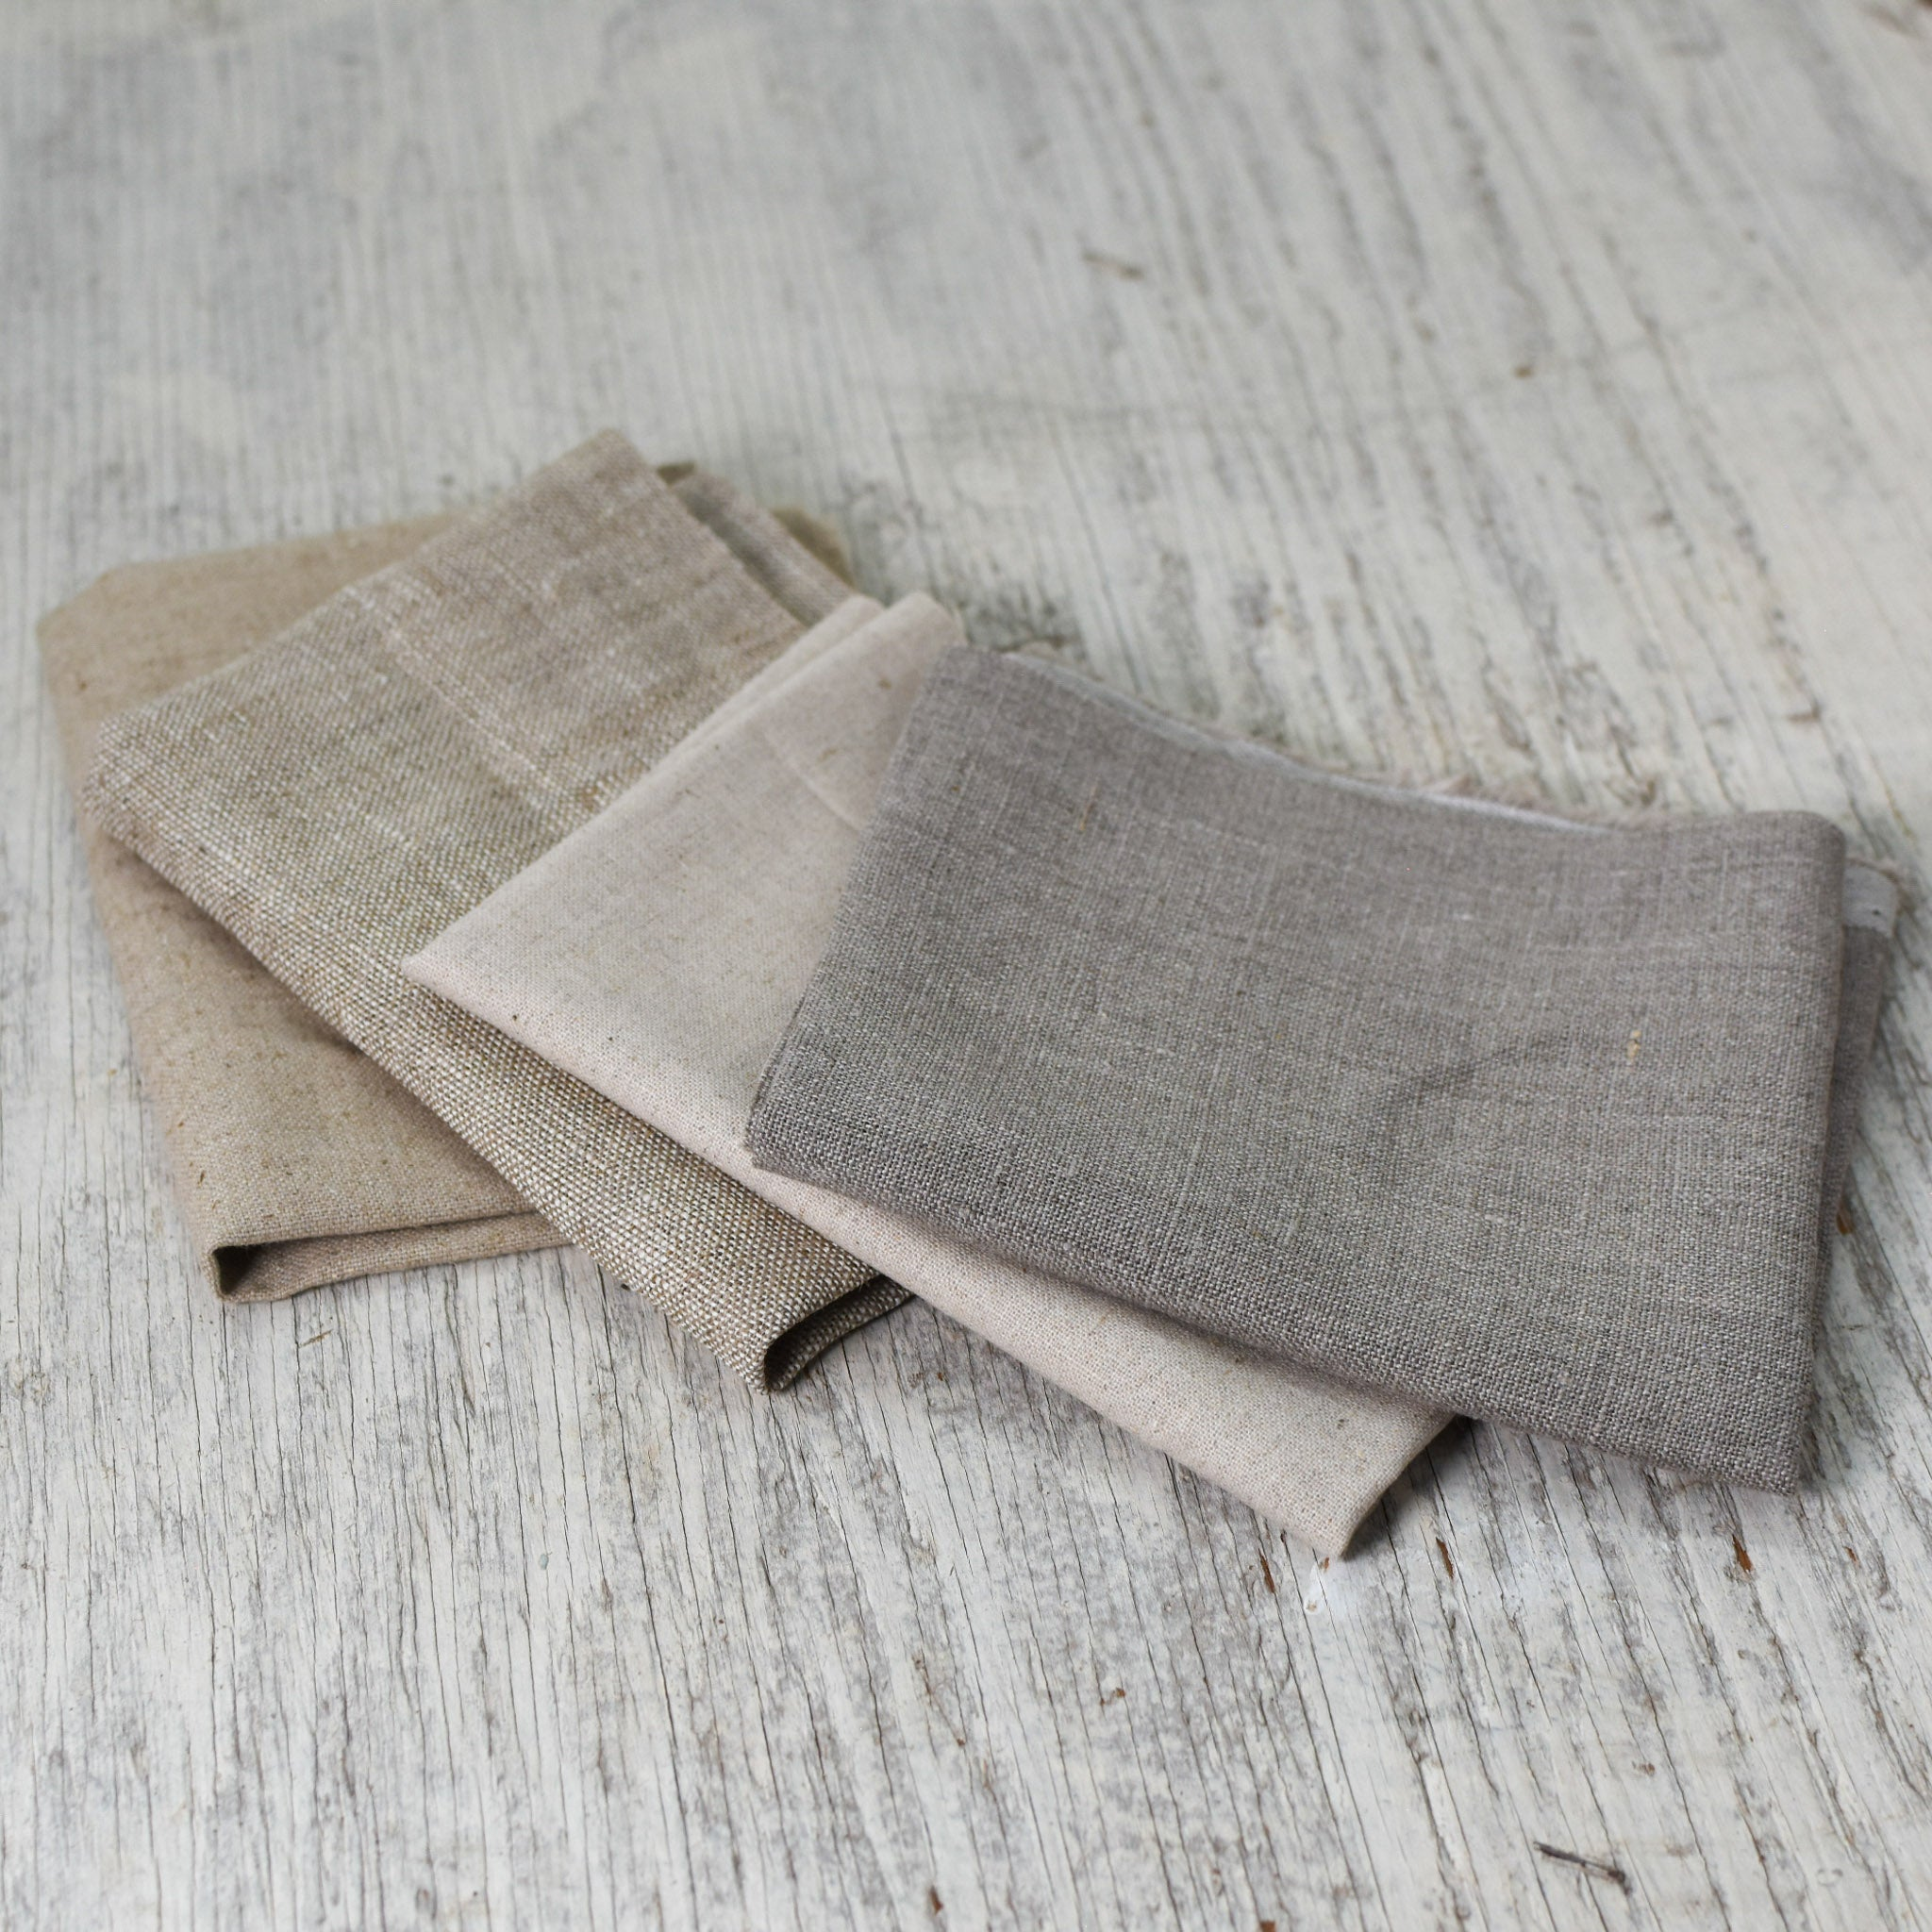 four pieces of folded natural brown linen fabric laid out in a fan shape to show variations in the colors and textures of each.